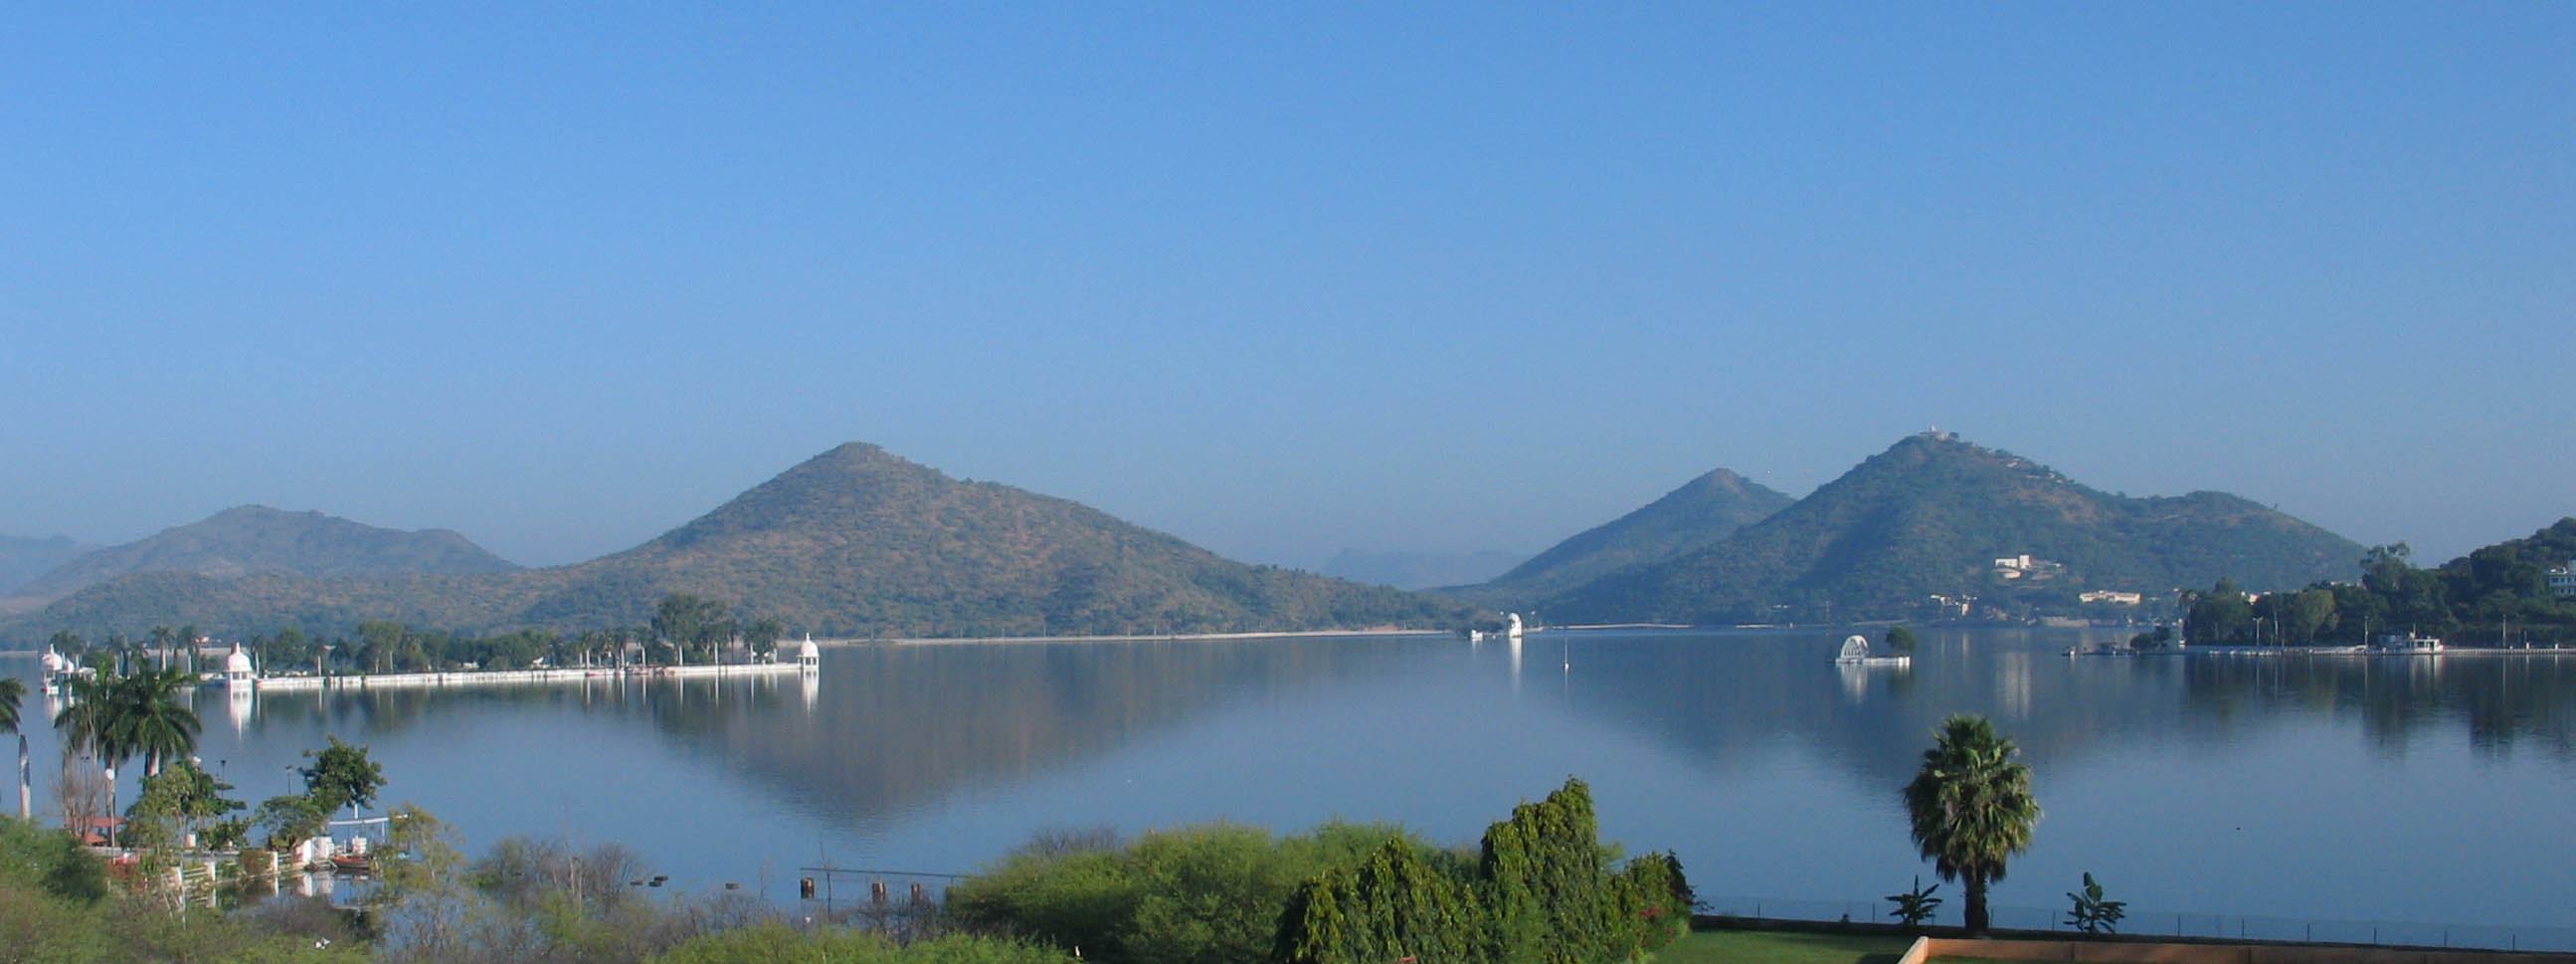 Udaipur Travel Guide 2020-Itinerary, Things To Do, Places To Visit | Book Now 3